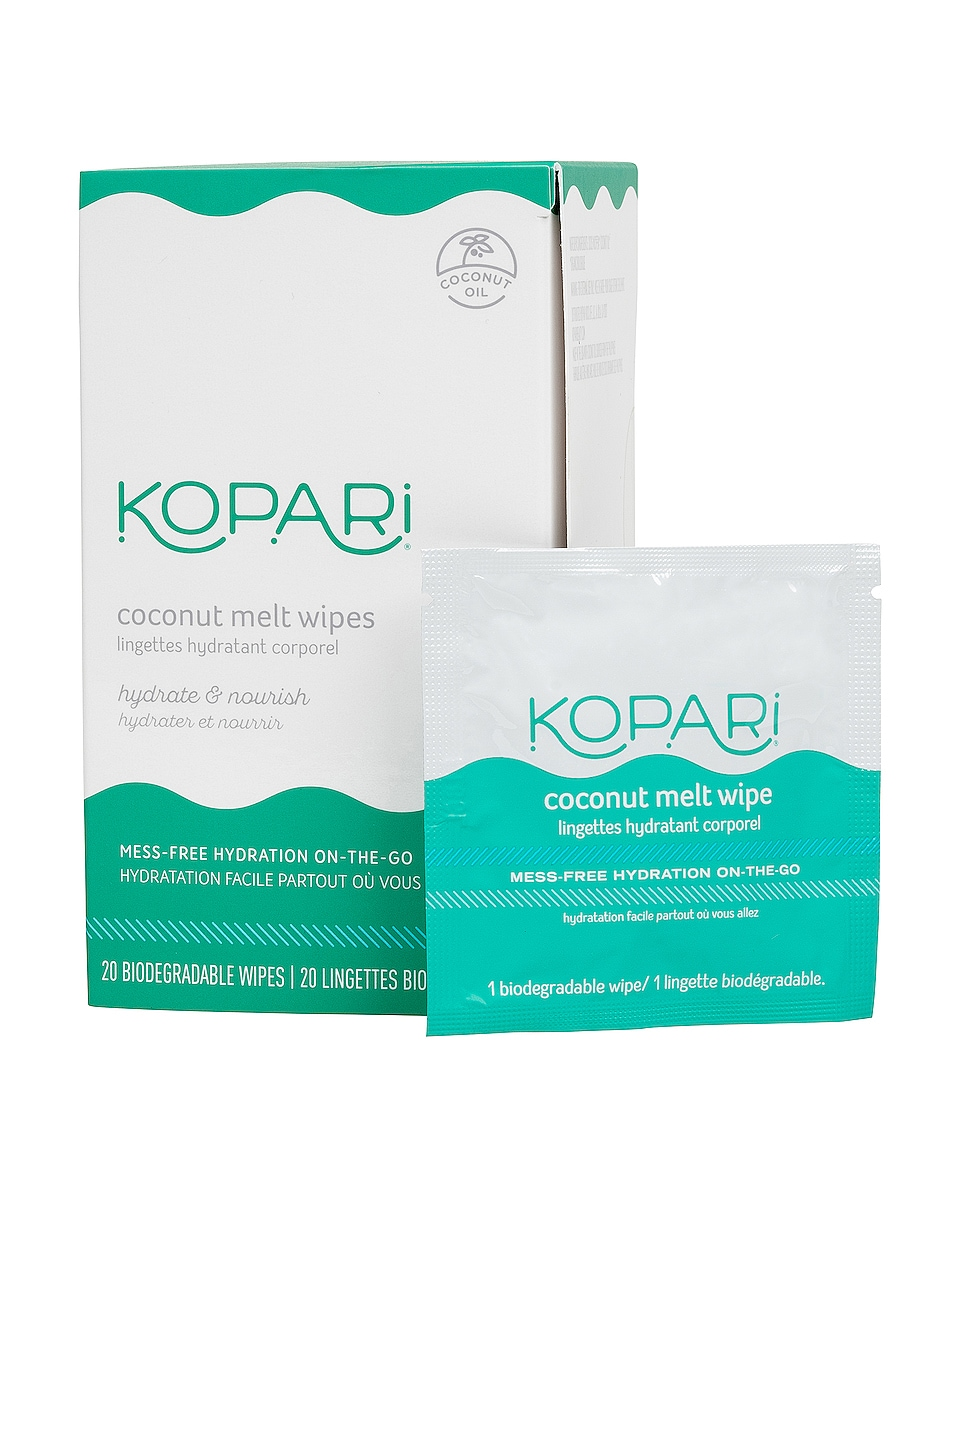 Kopari Coconut Melt Wipes